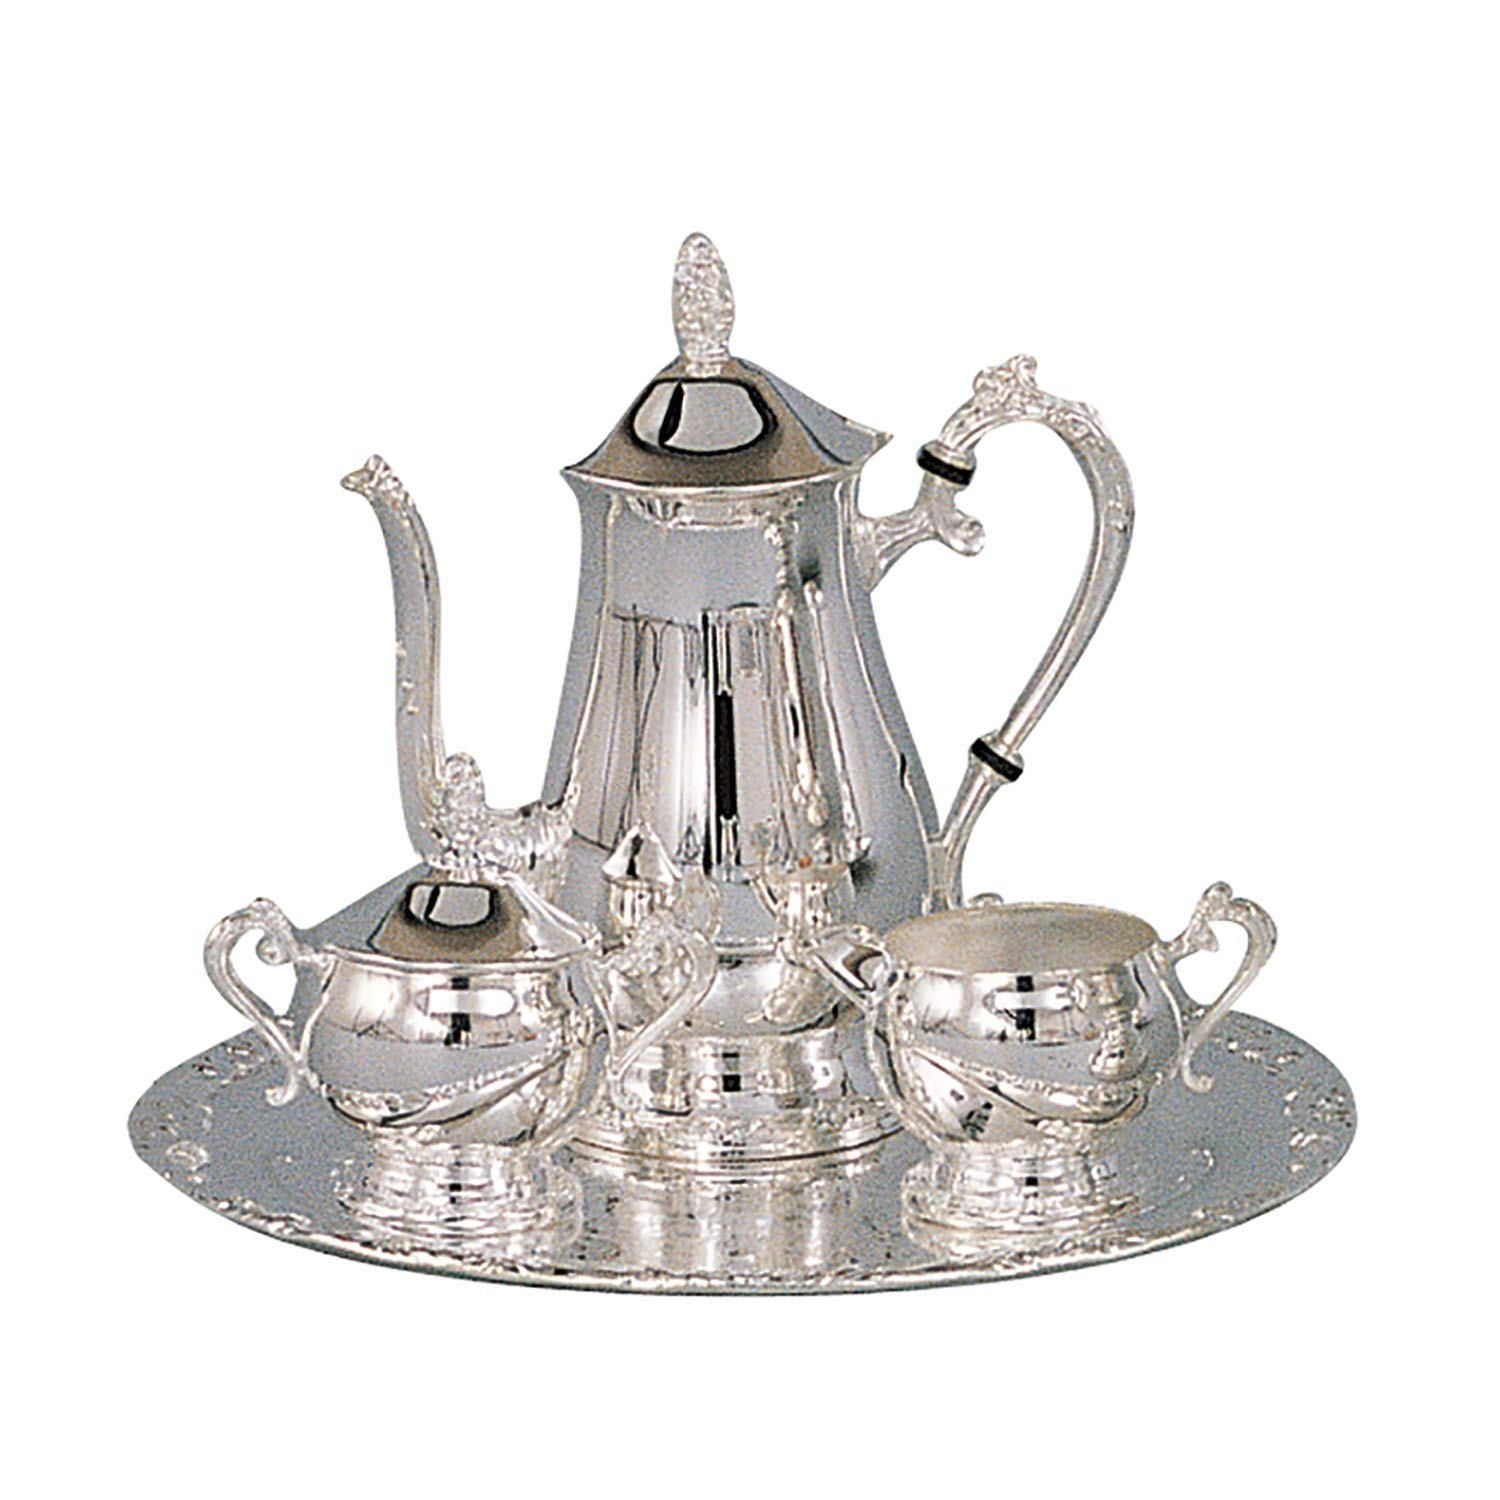 Elegance Silver 89801 Romantica Collection Silver Plated Coffee Set, 4 Piece